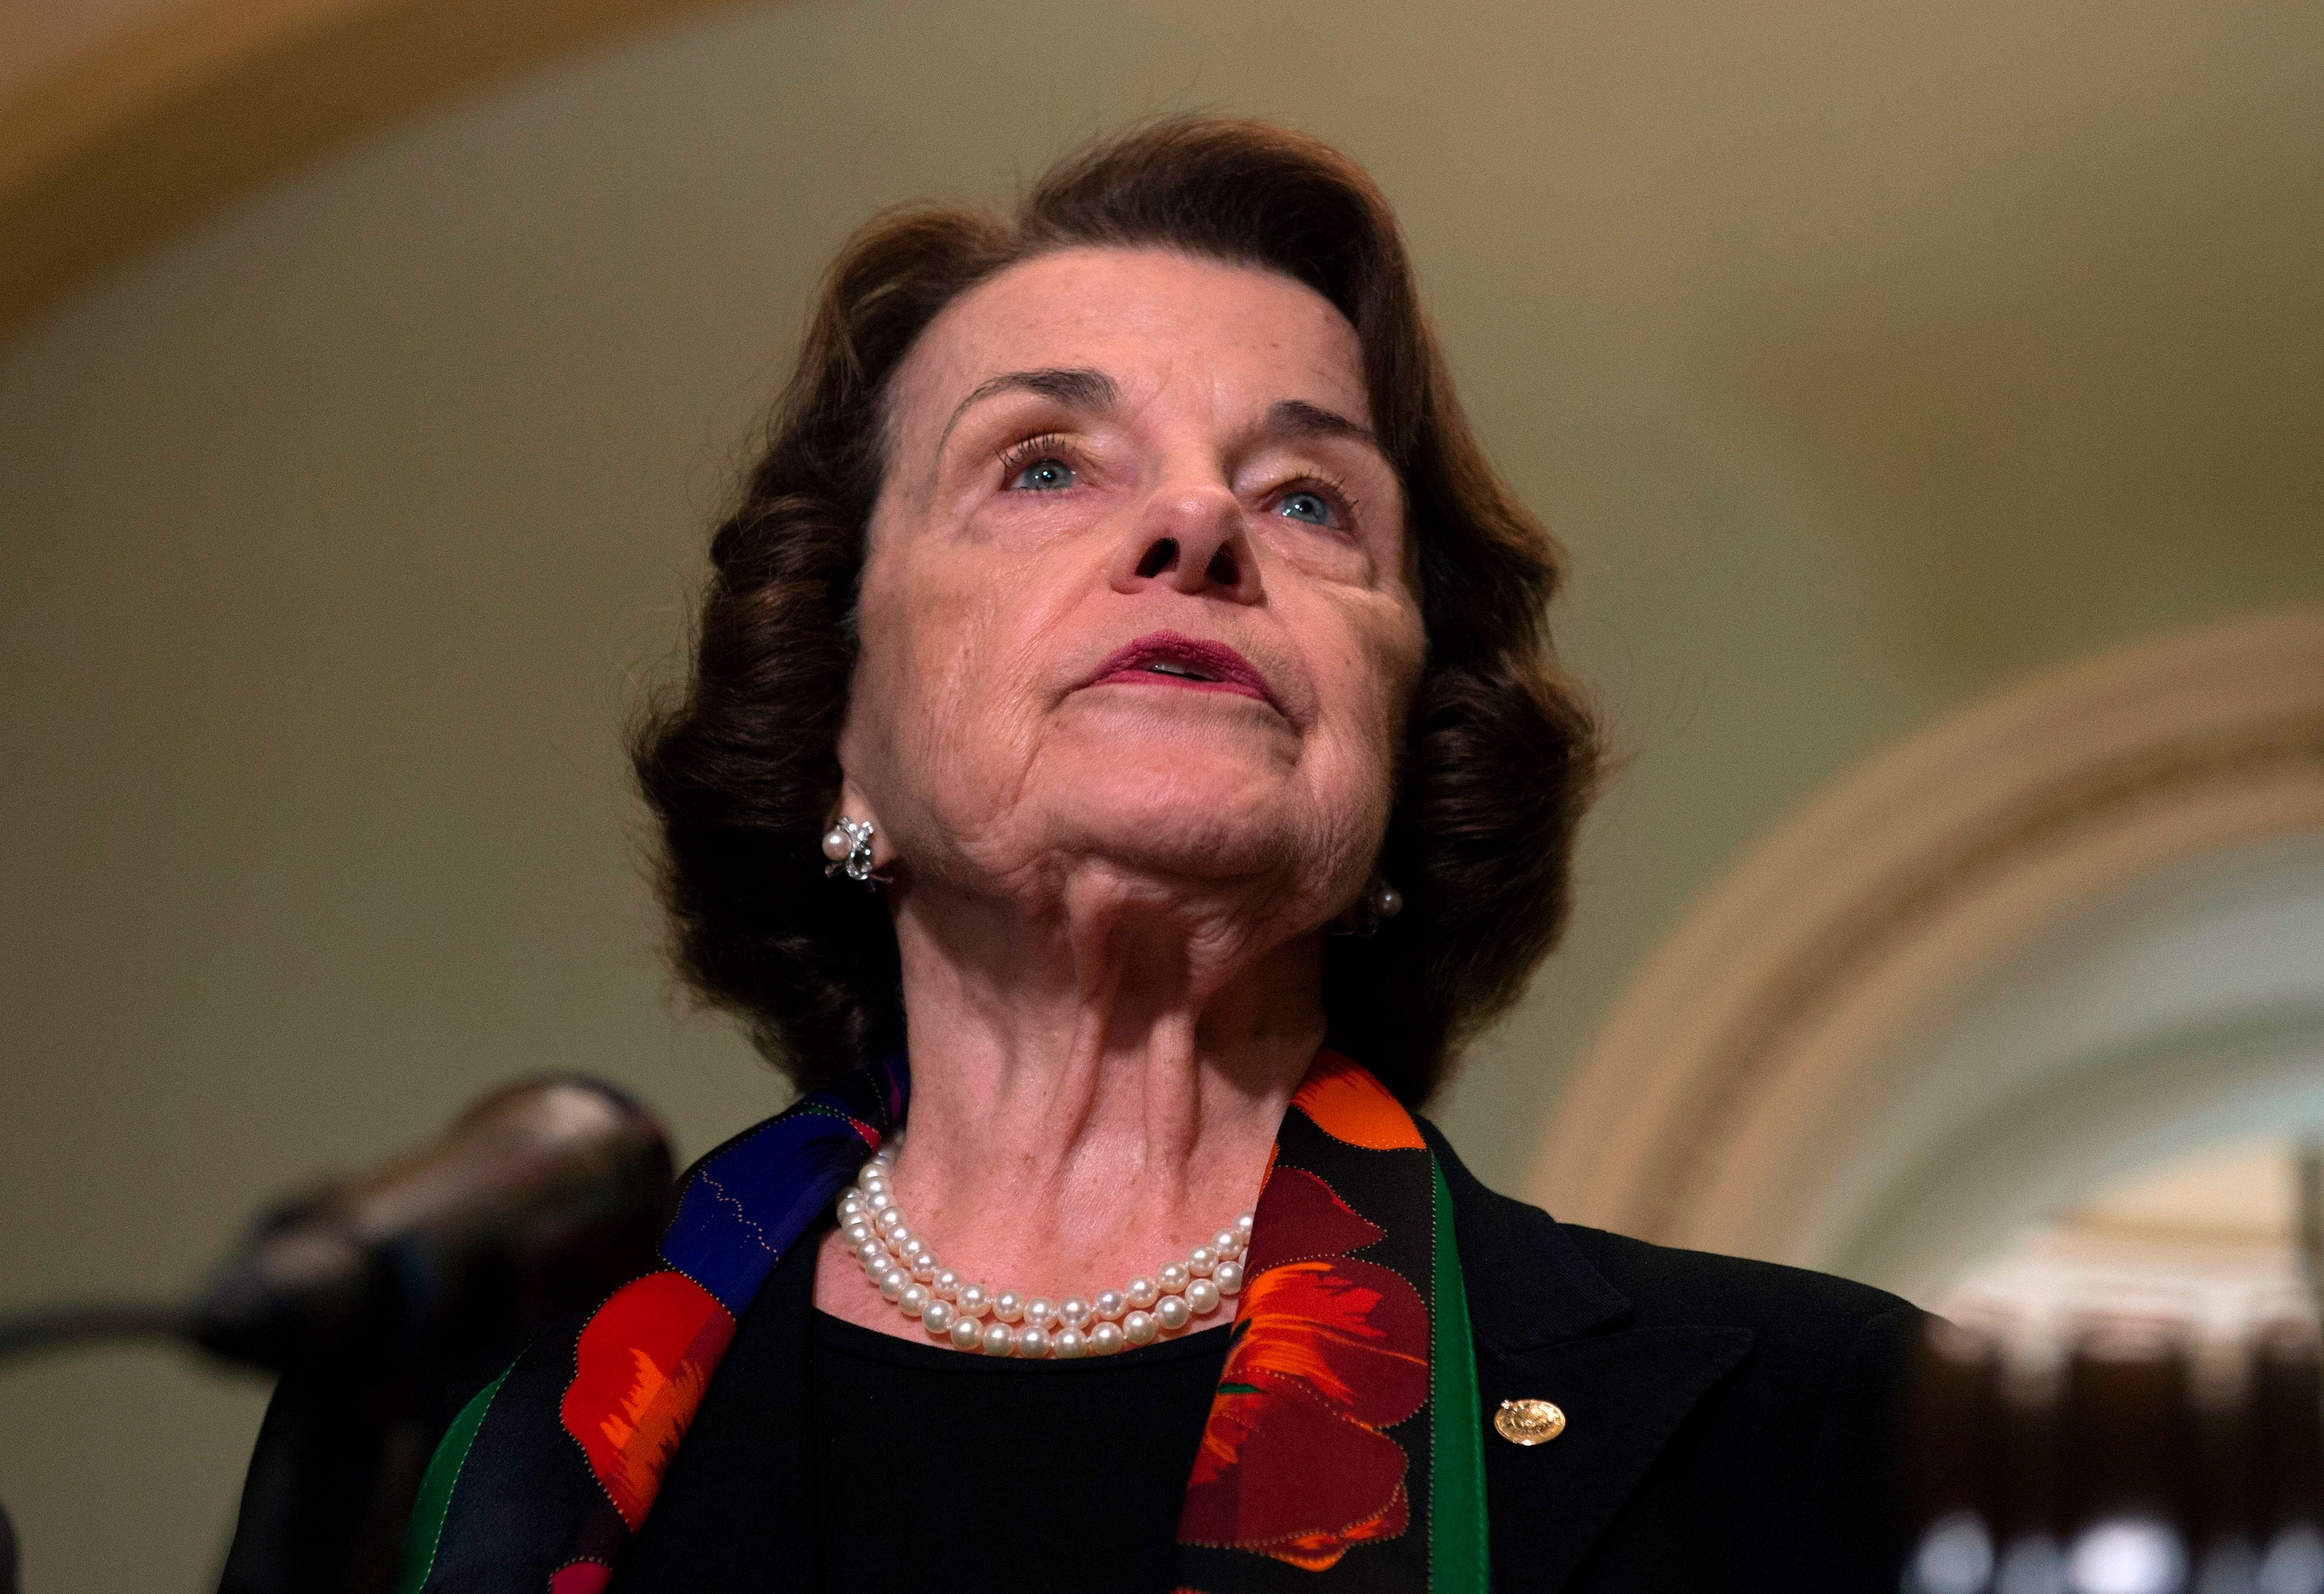 Democratic US Senator Dianne Feinstein speaks during a press briefing about the recent FBI investigation into US Supreme Court nominee Brett Kavanaugh on Capitol Hill in Washington, DC on October 4, 2018. - Top Democrats on Thursday denounced the latest FBI investigation into sexual assault allegations against Kavanaugh as 'incomplete' and 'limited.' 'It looks to be a product of an incomplete investigation that was limited, perhaps by the White House, I don't know,' Feinstein said. (Photo by ANDREW CABALLERO-REYNOLDS / AFP)        (Photo credit should read ANDREW CABALLERO-REYNOLDS/AFP/Getty Images)